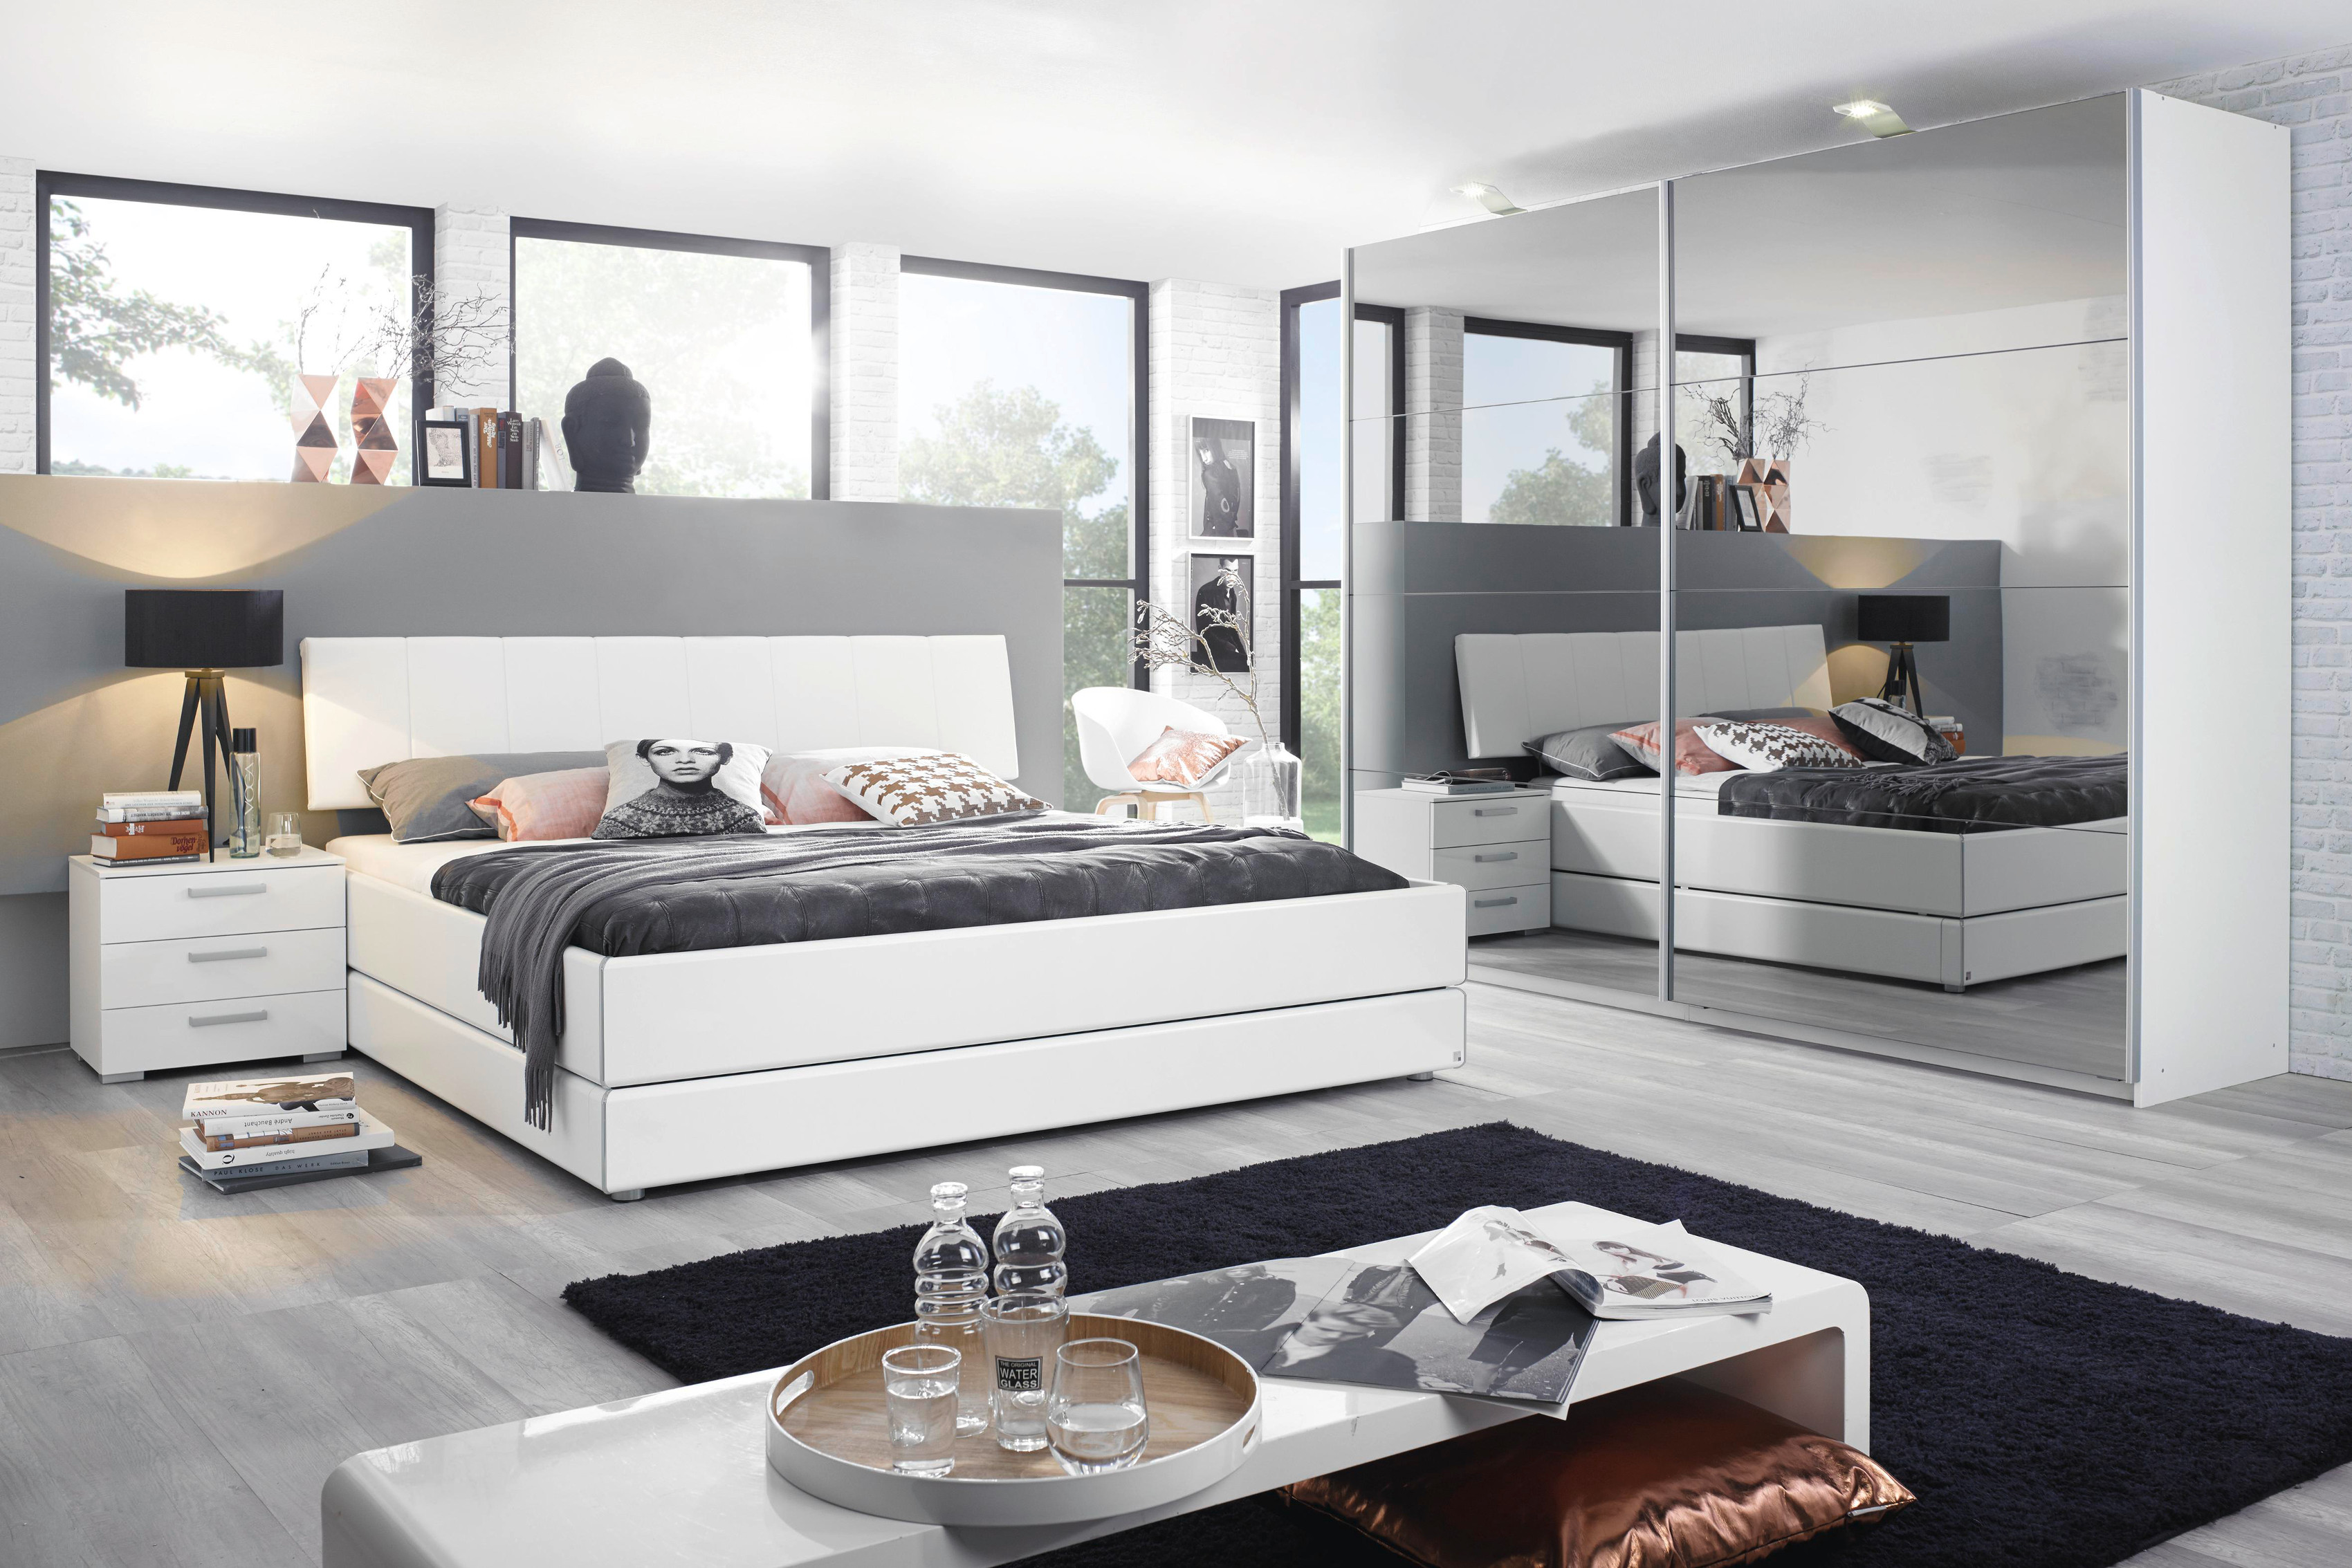 rauch select bettgestell mavi base bettkasten alpinwei kopfteil lederoptik ebay. Black Bedroom Furniture Sets. Home Design Ideas